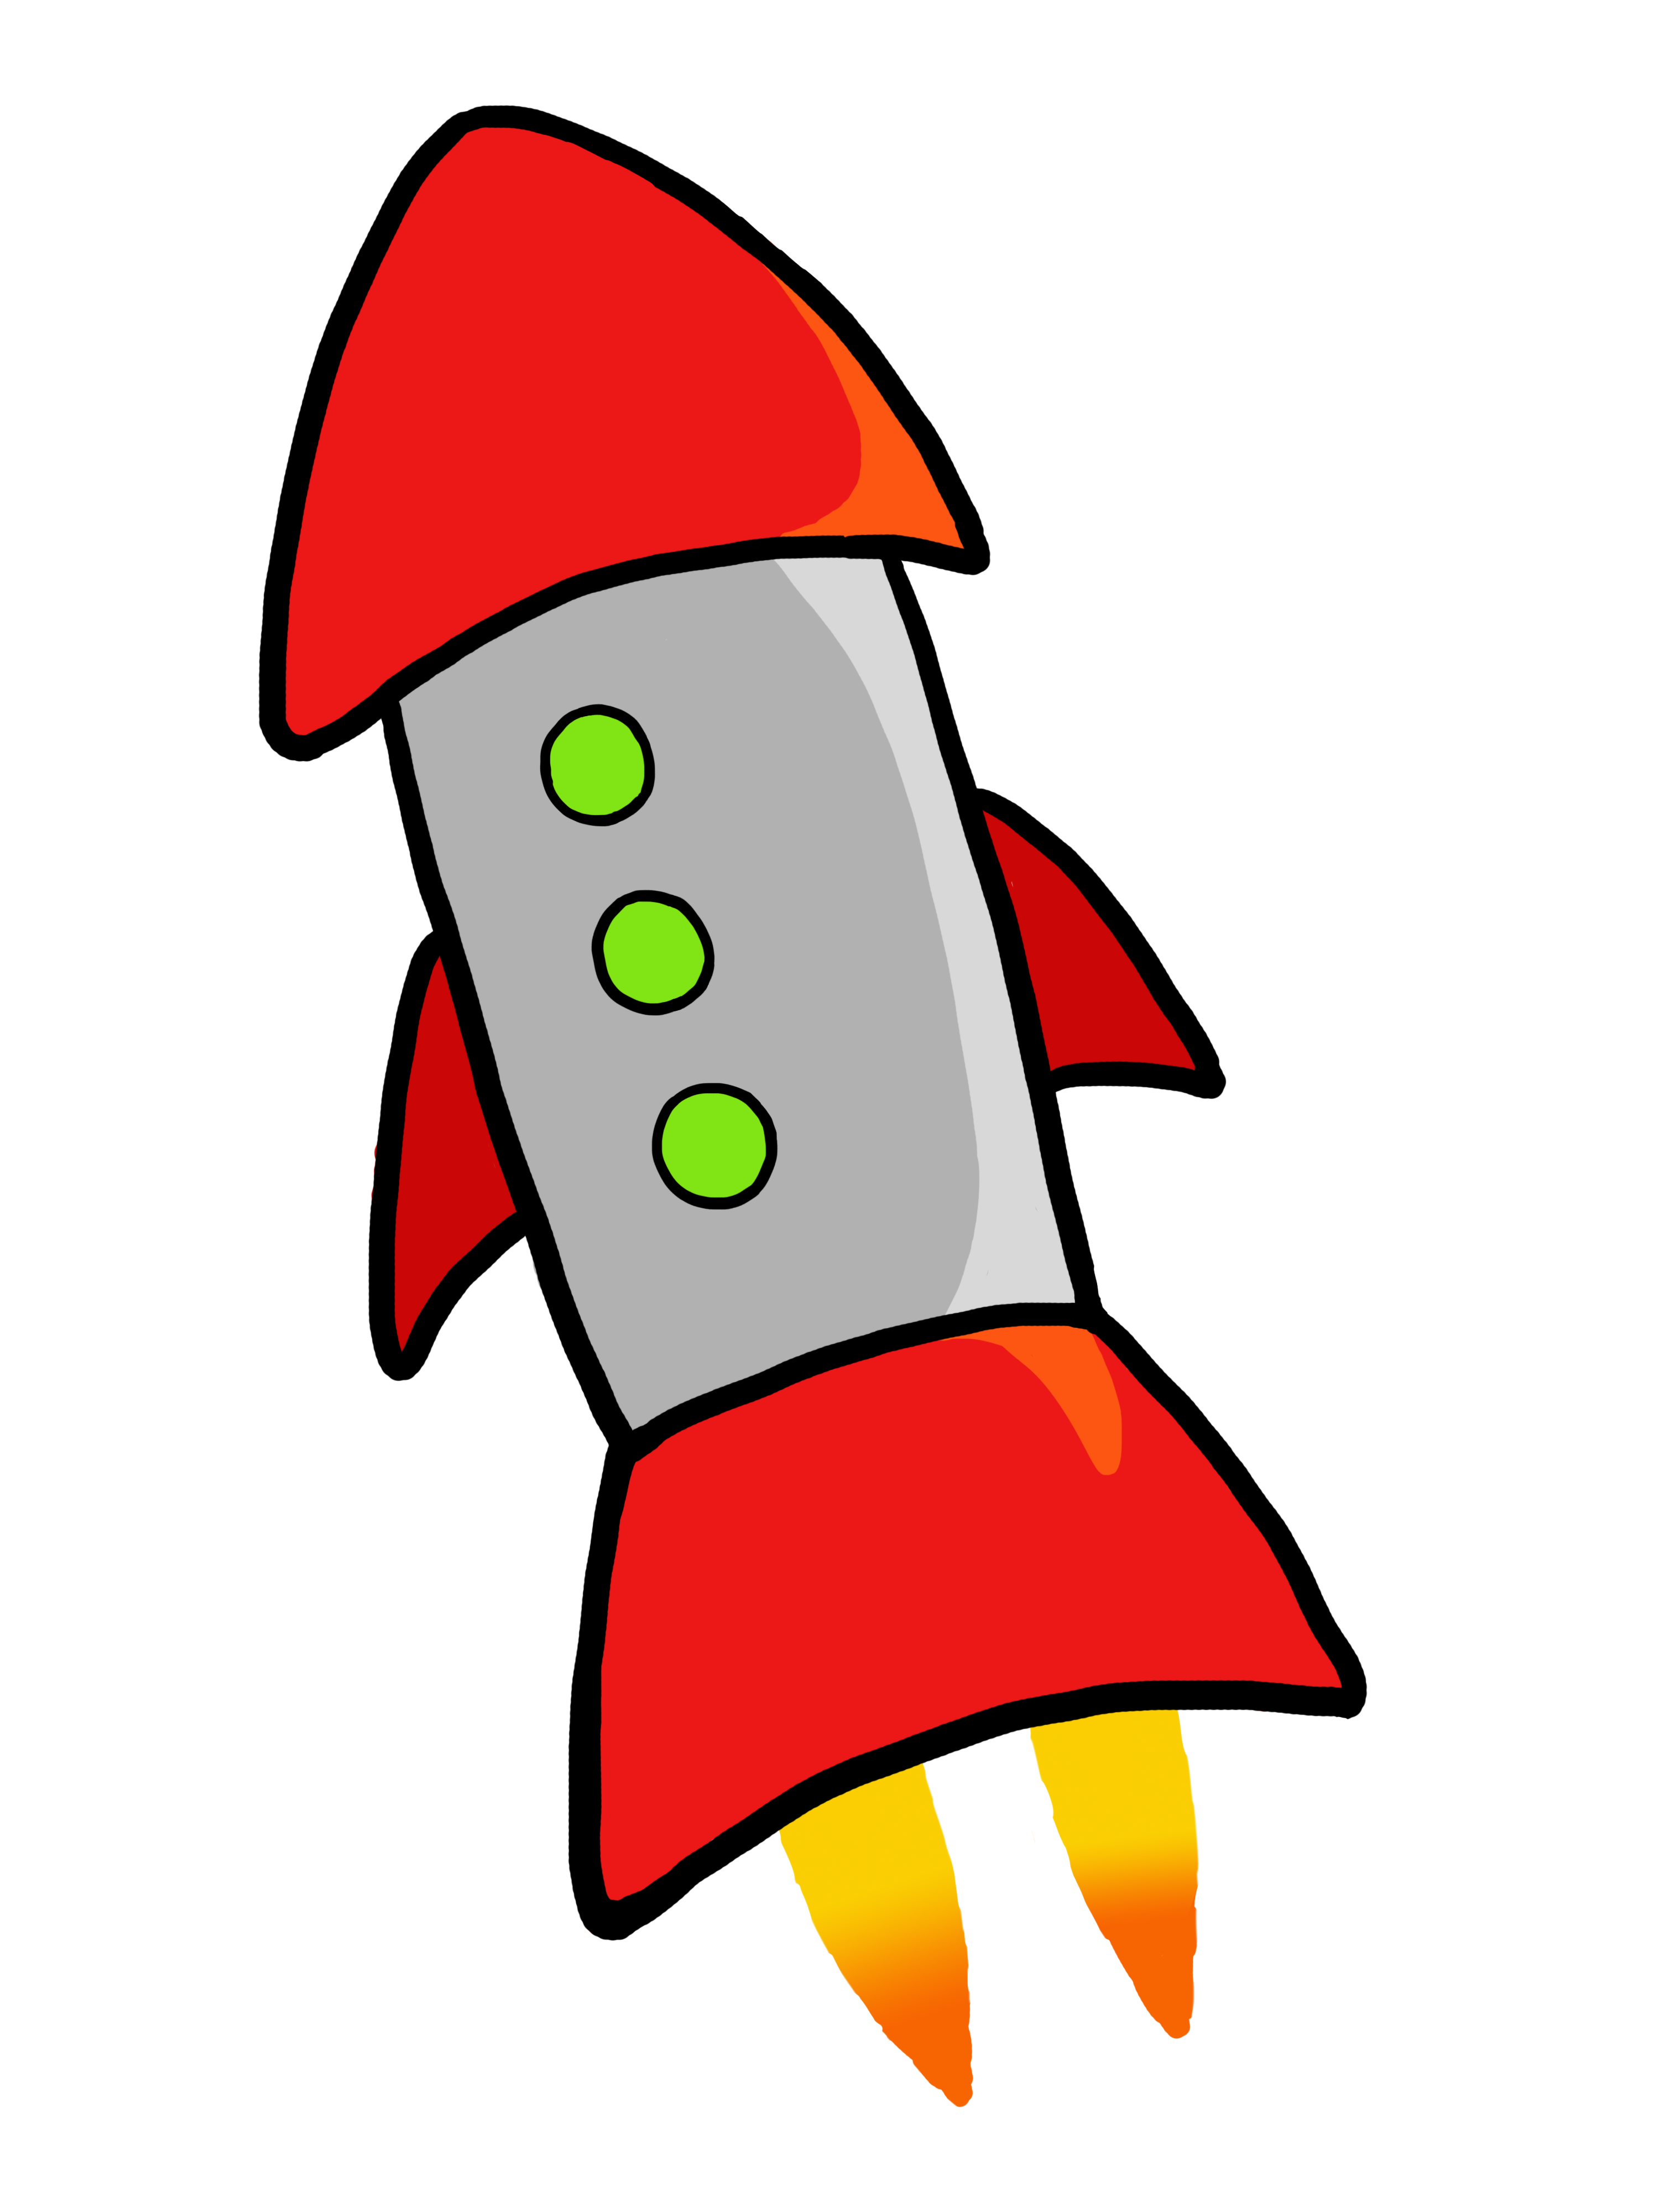 Gold rocket. Free picture of a